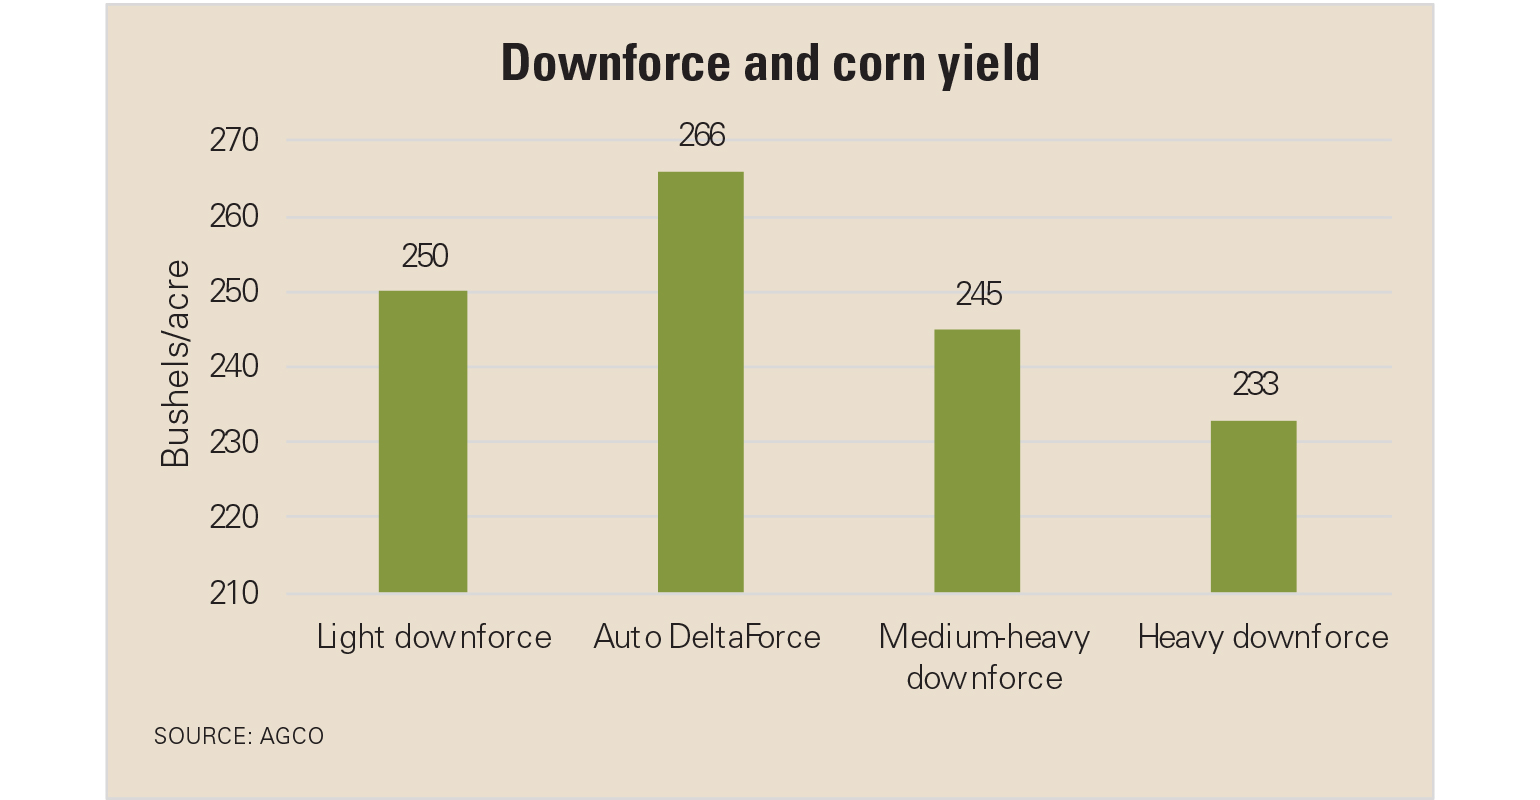 Downforce and corn yield